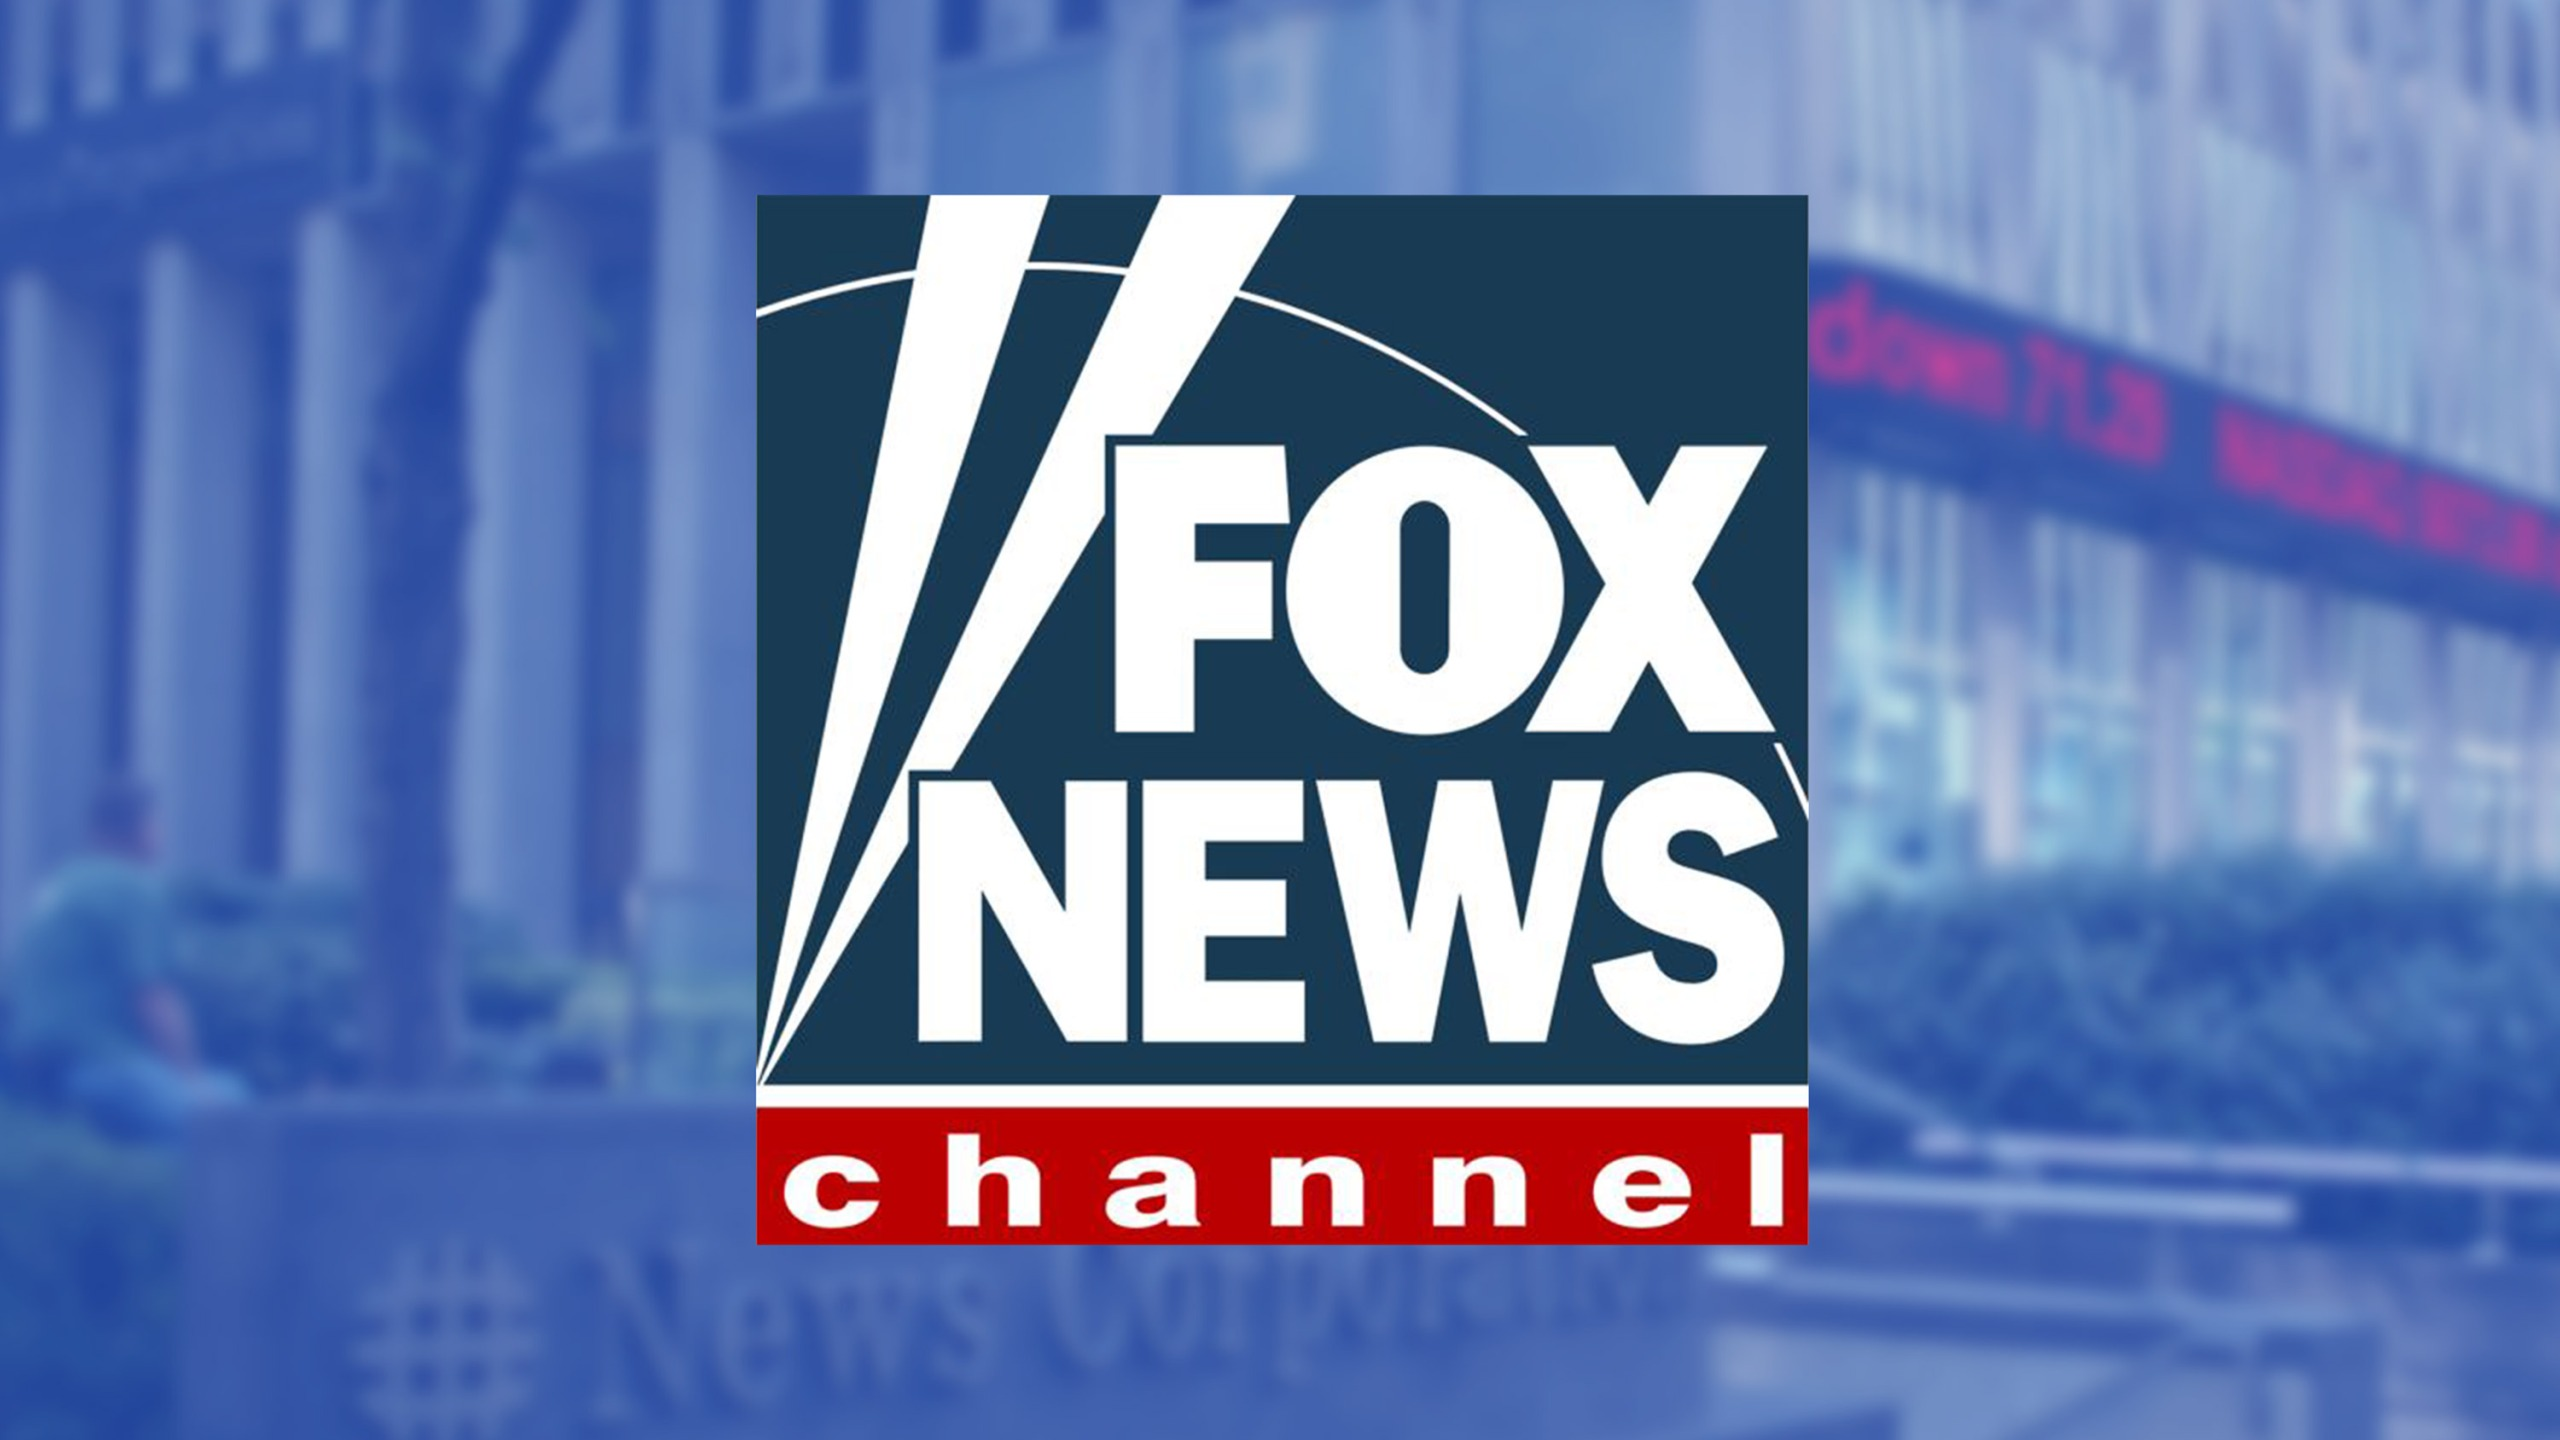 The Fox News logo appears in this image. (Kevin Hagen/Getty Images)